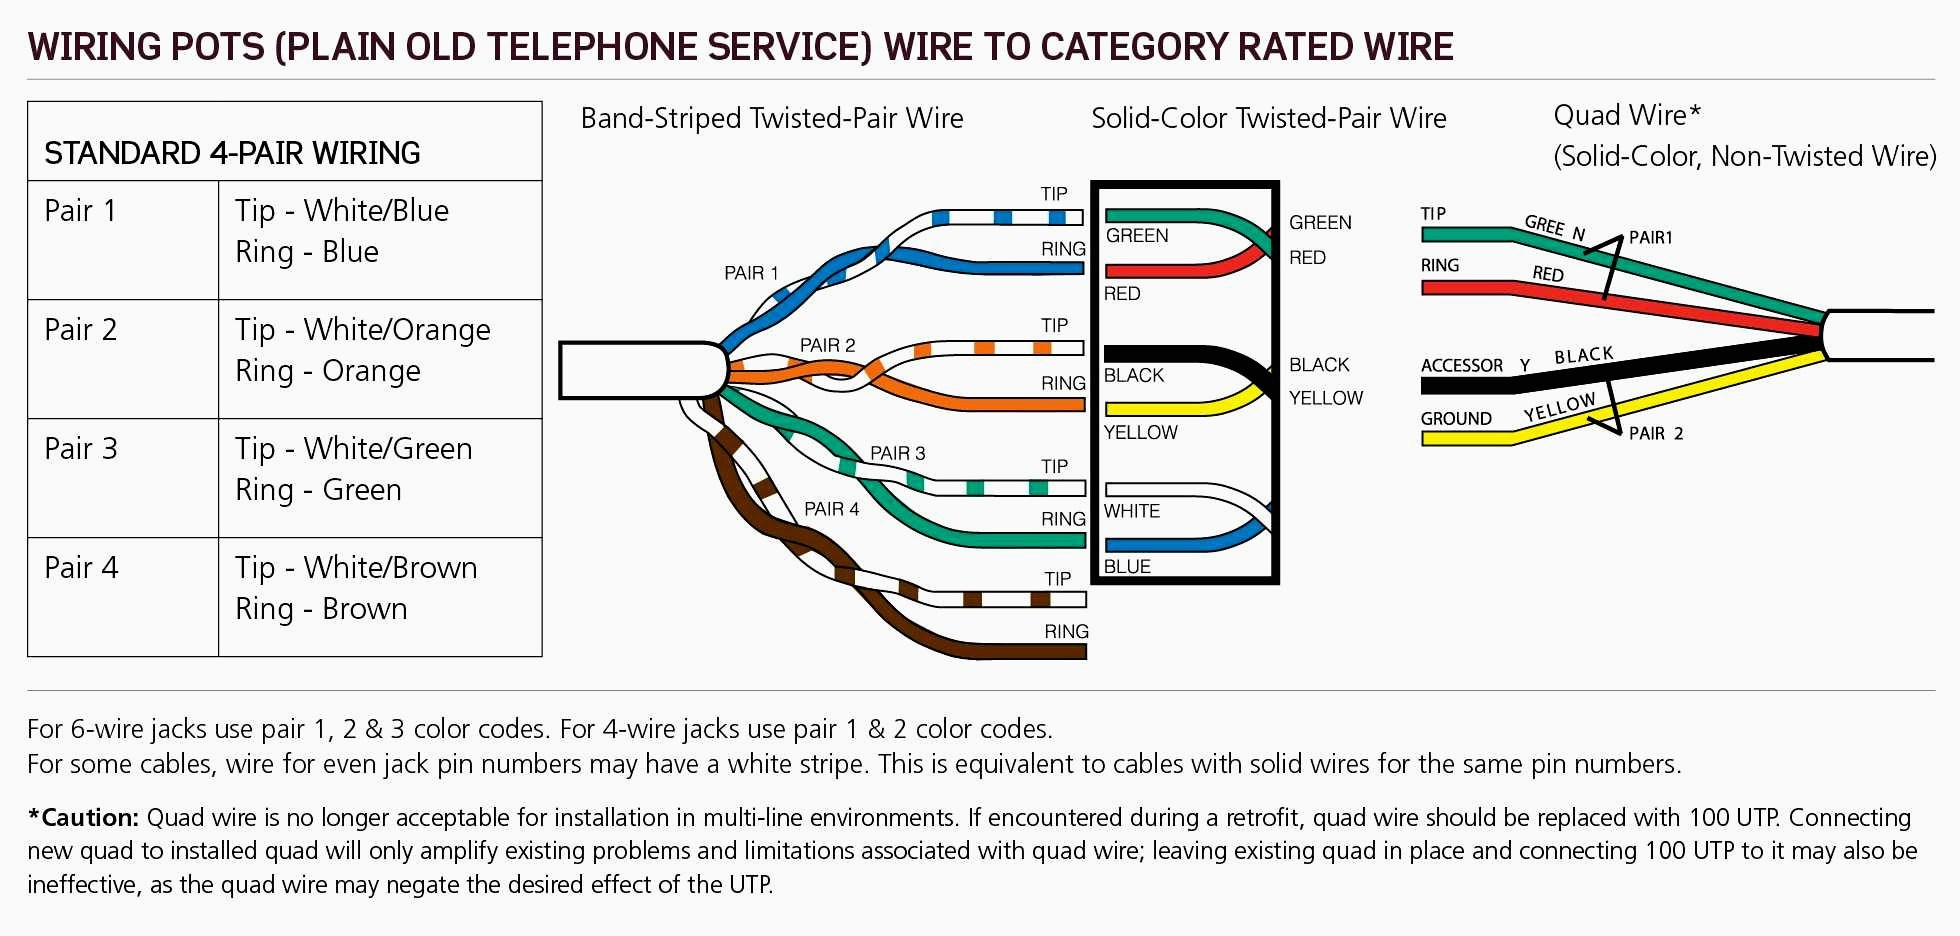 rj12 wiring diagram orange blue today wiring diagramorange usb wire diagram wiring diagram rj11 cat5 wiring diagram rj12 wiring diagram orange blue